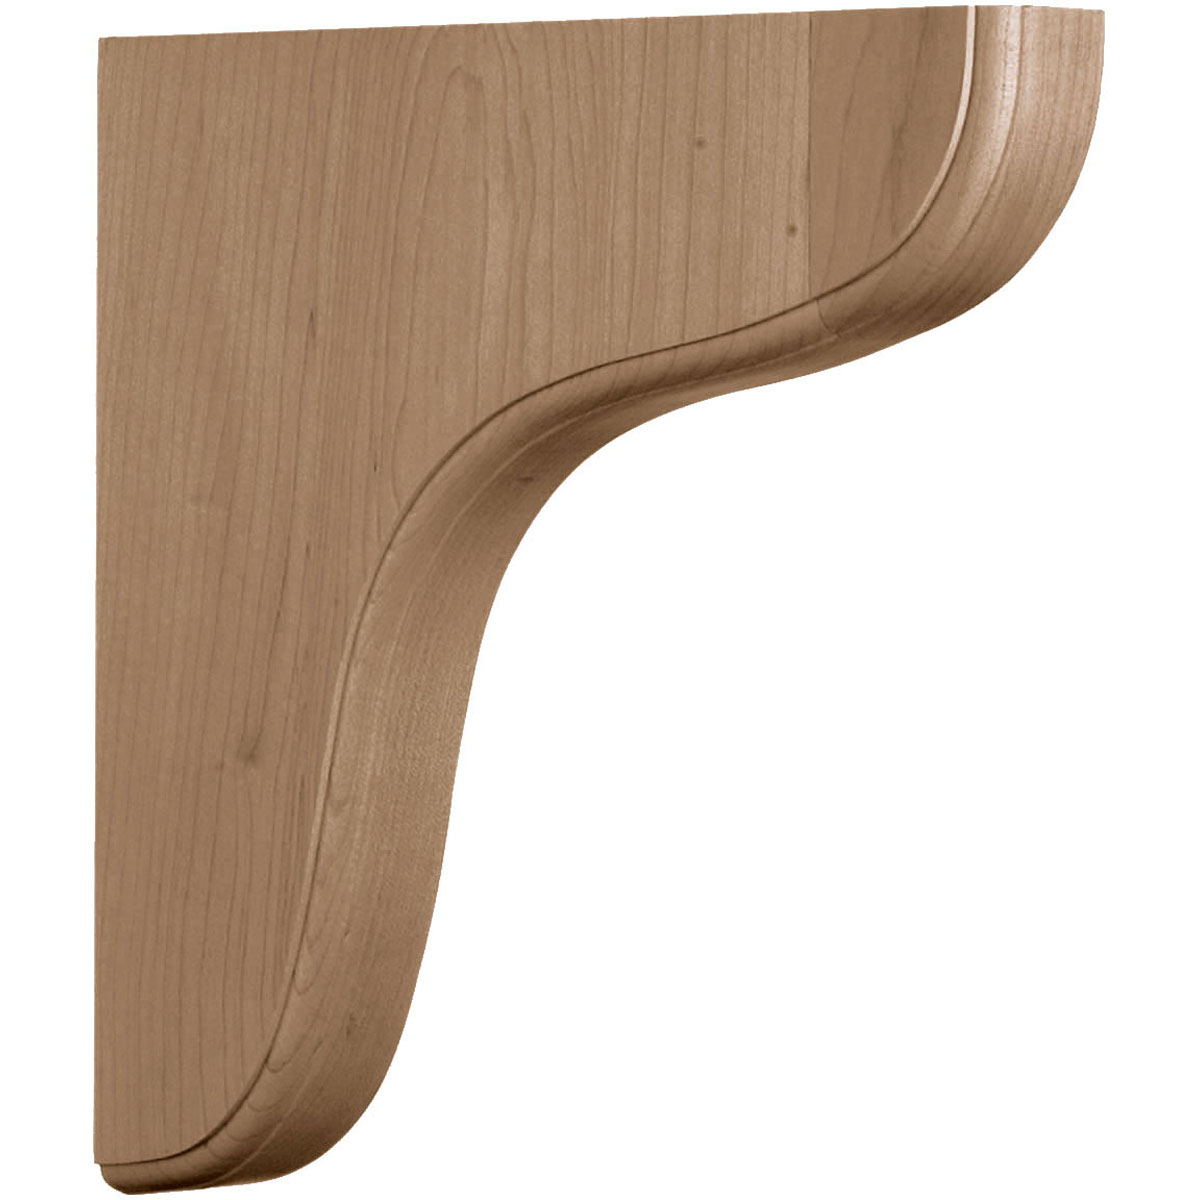 Wood Shelf Bracket Patterns